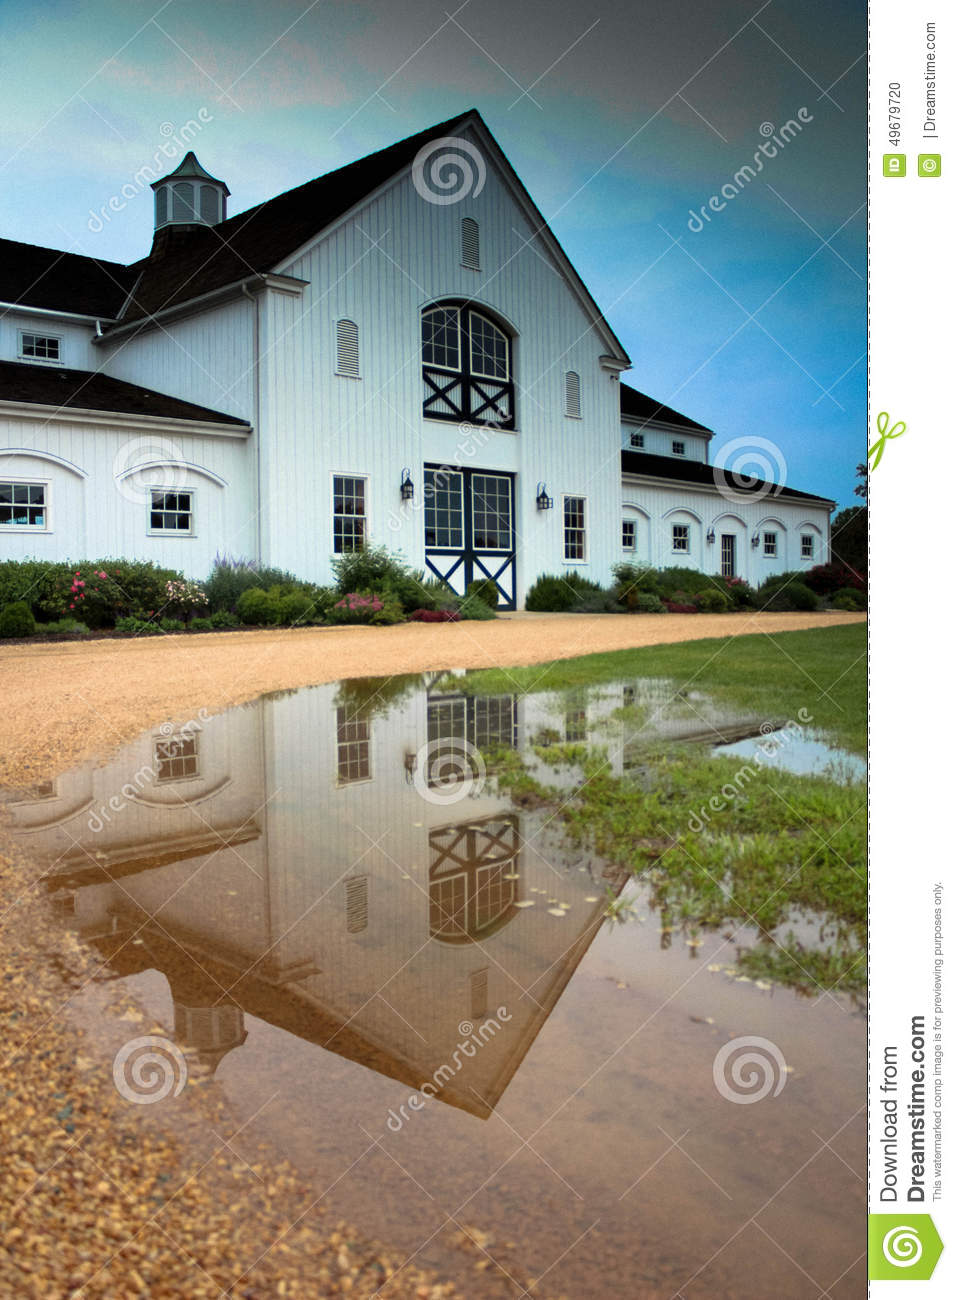 Reflection of the barn